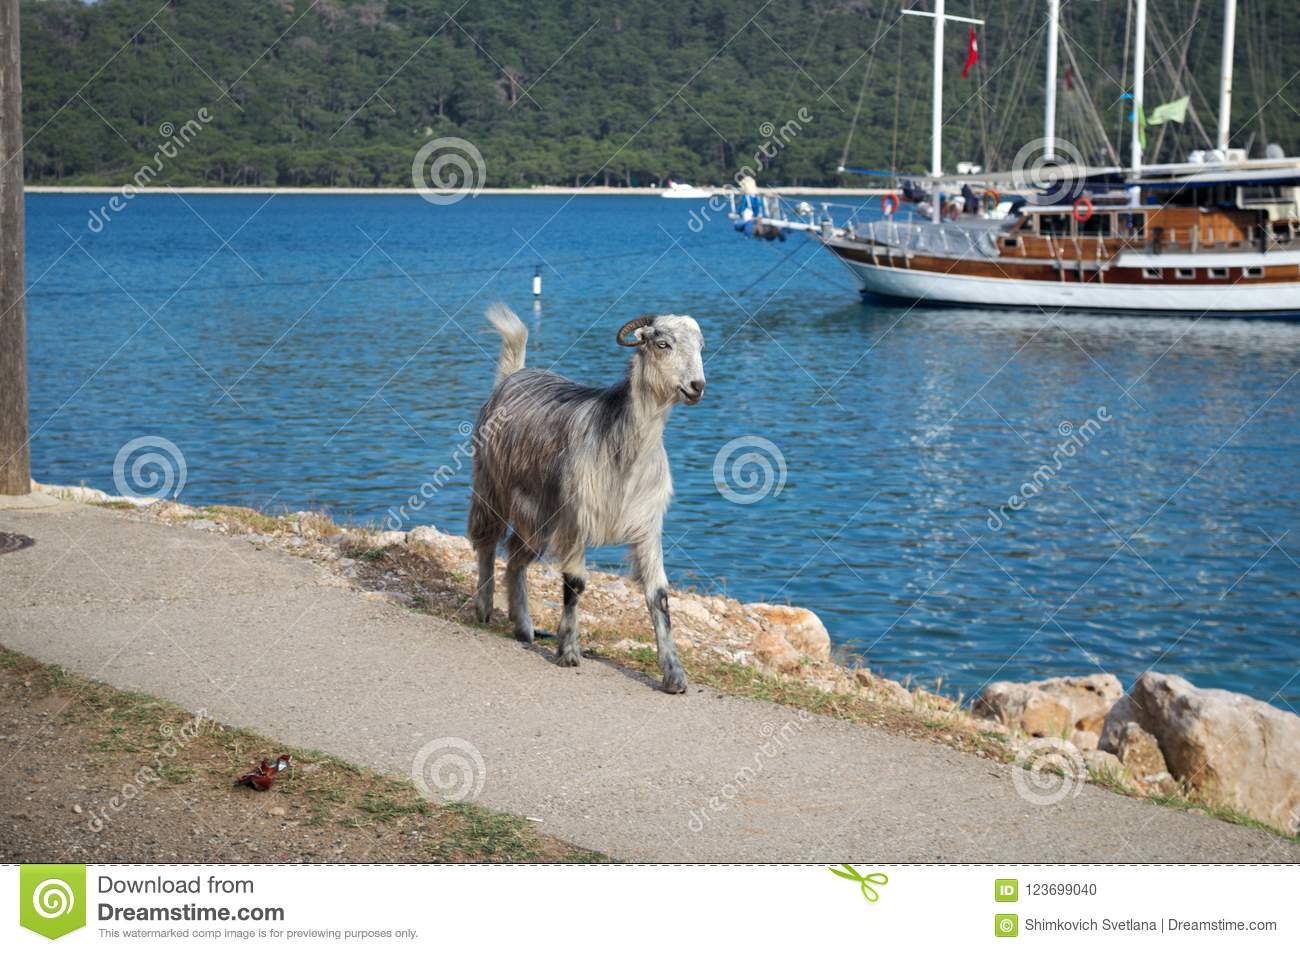 KEMER, TURKEY - MAY 07, 2018: the horned goat is on the coastal path